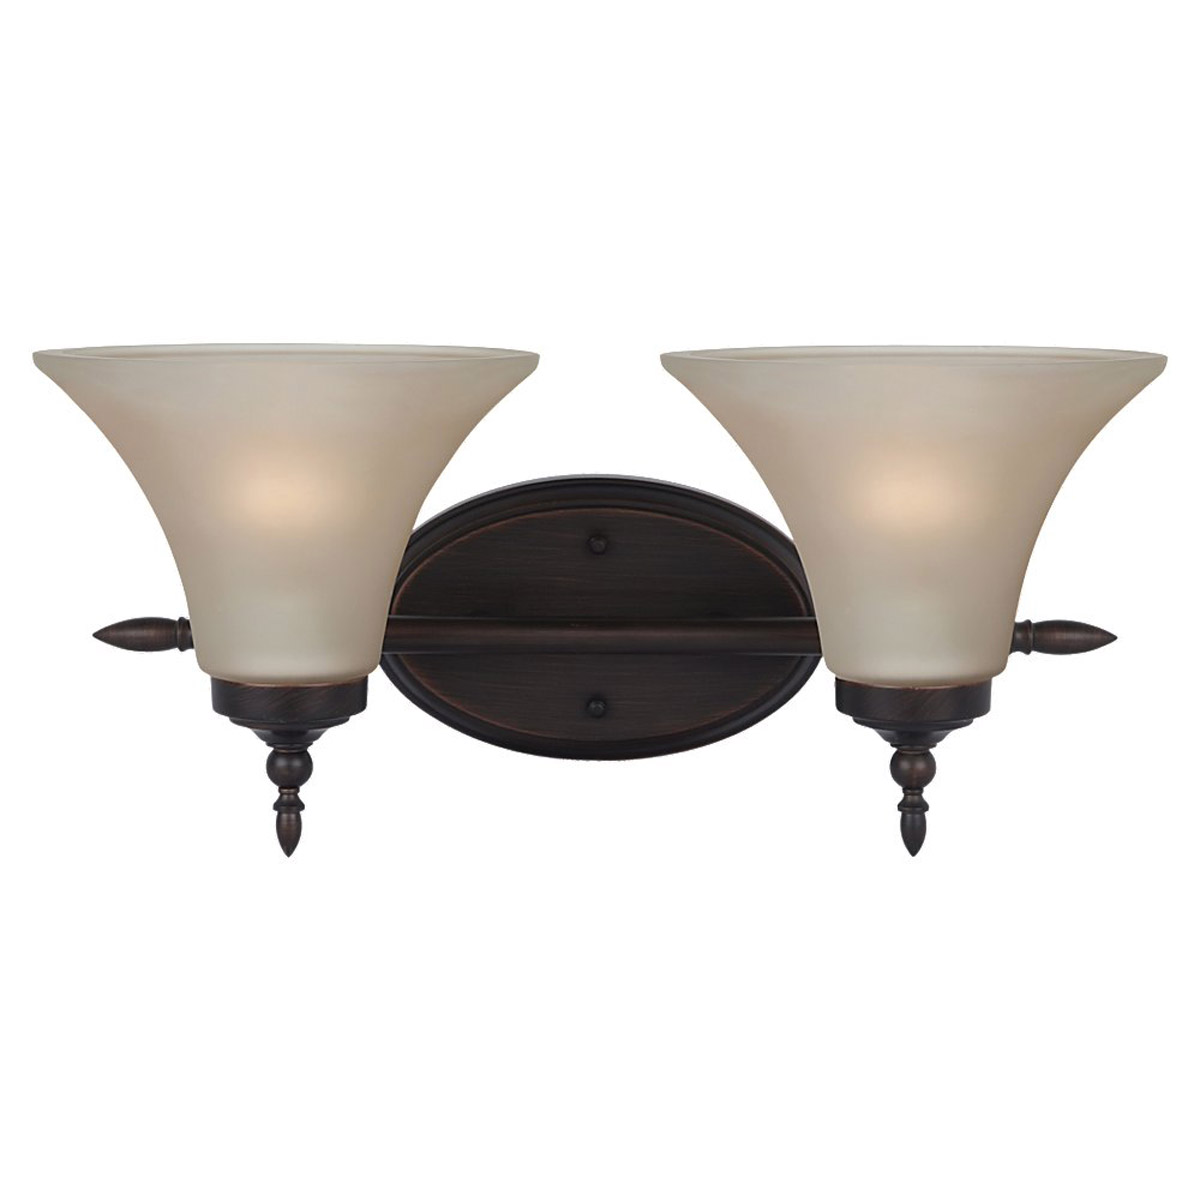 Sea Gull Lighting Montreal 2 Light Bath Vanity in Burnt Sienna 41181BLE-710